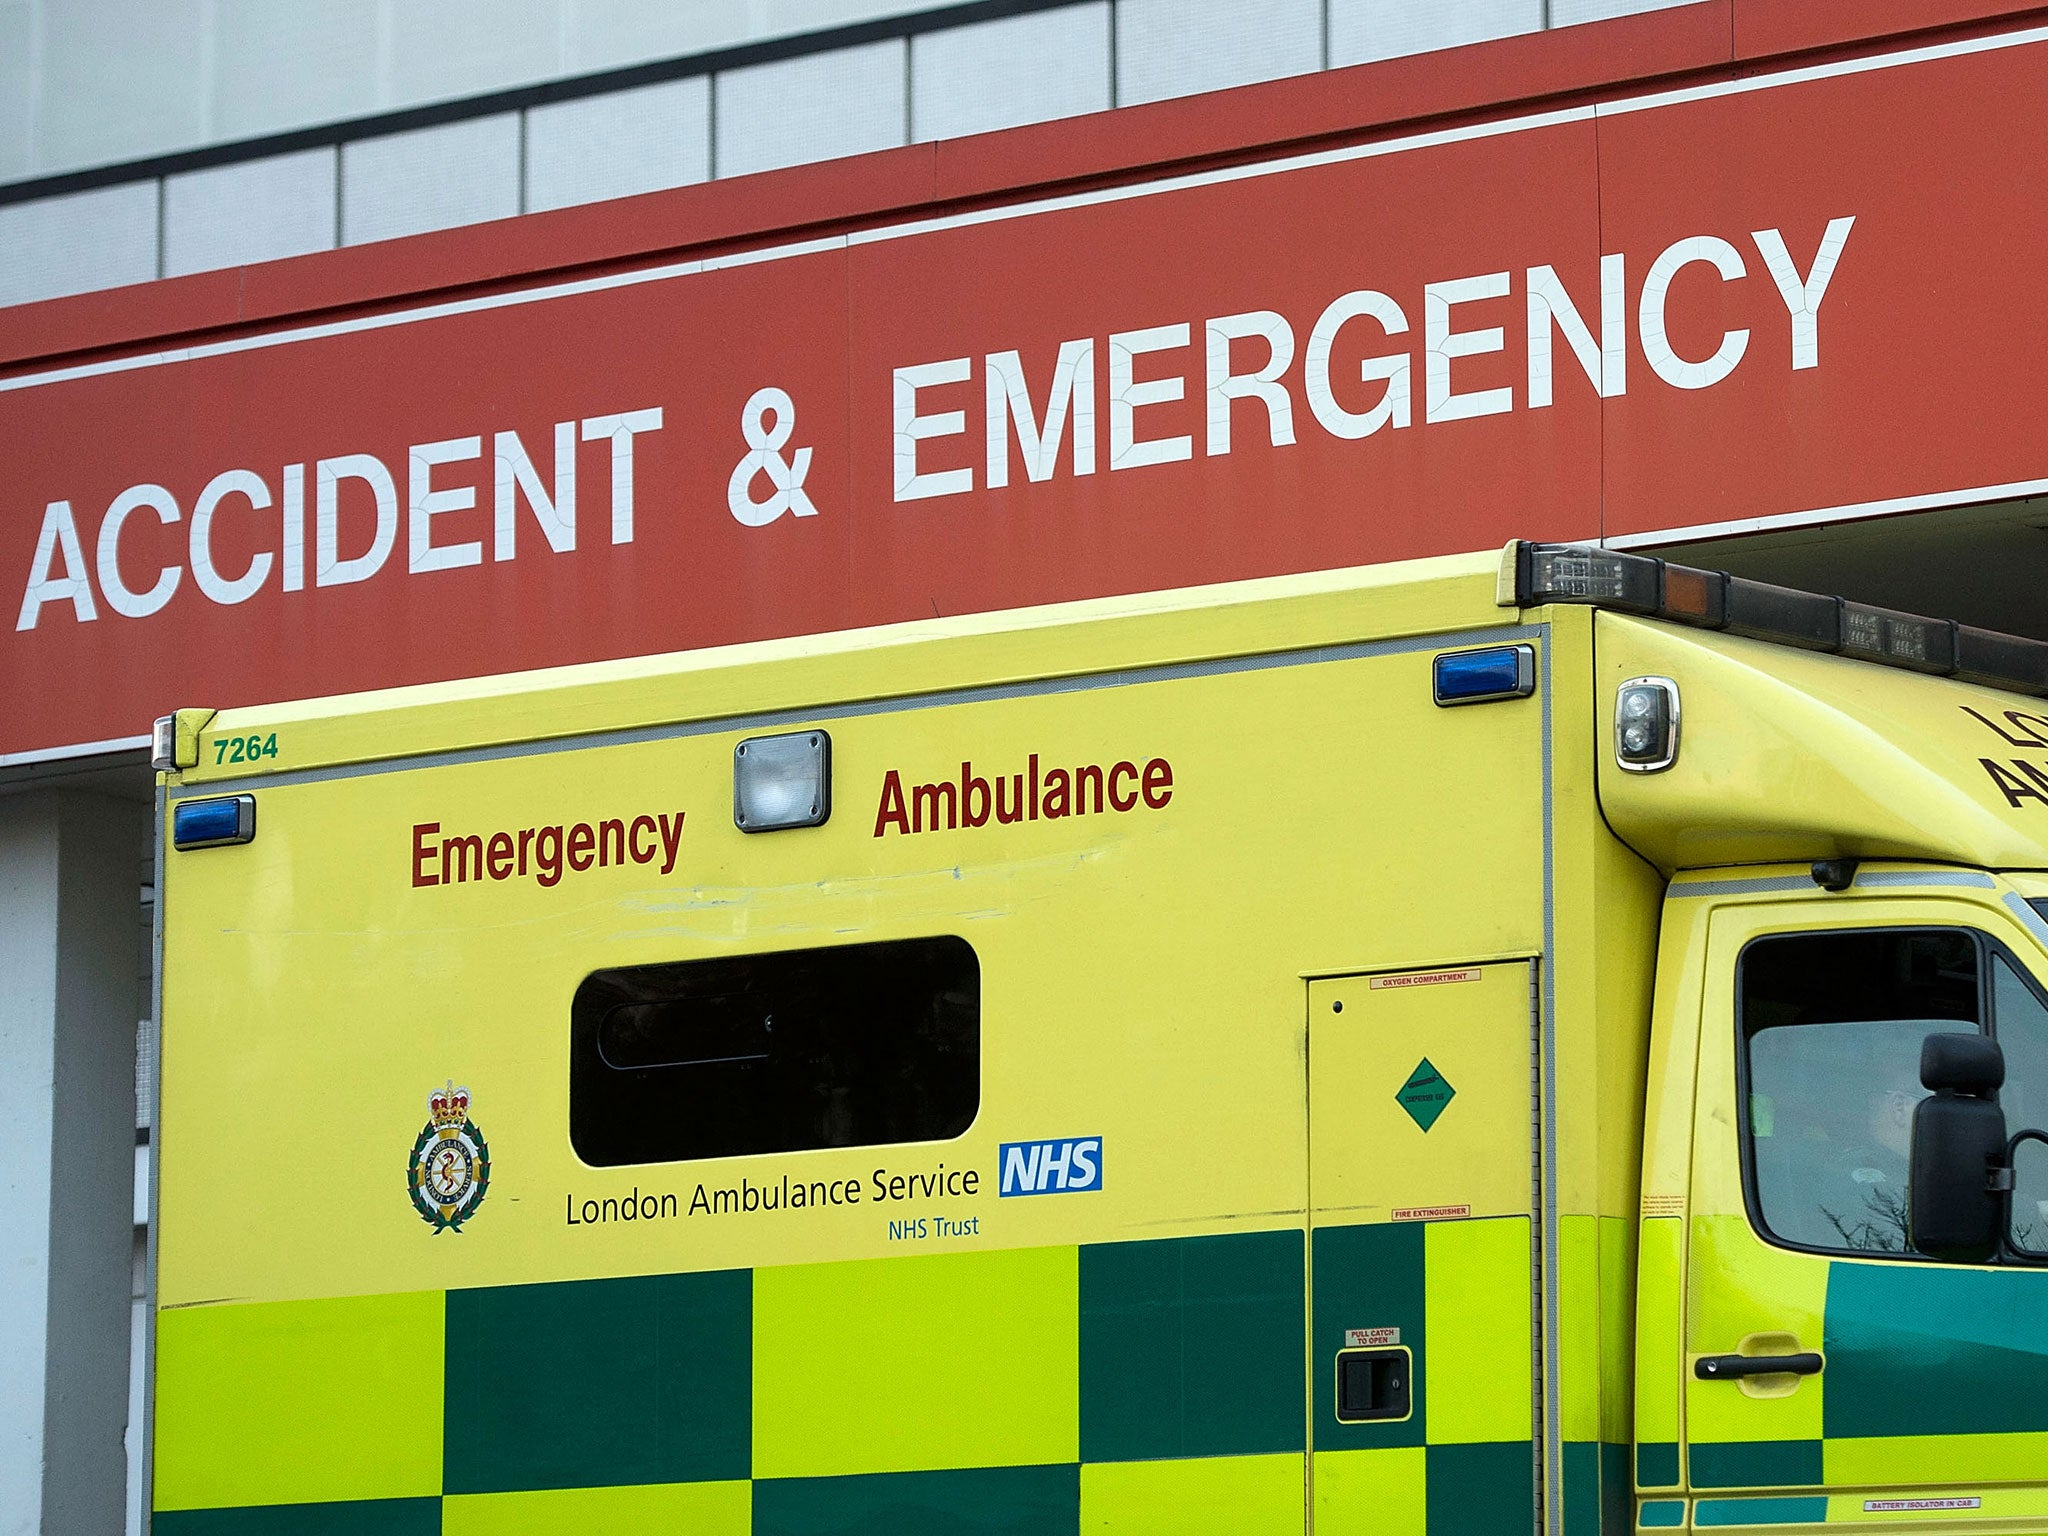 Symptoms That Could Mean You Need To Go To Hospital Now According To Experts The Independent The Independent There might be different laws in other countries, but in most states of the us all you have to do is sign a form that says you refuse to seek treatment by ambulance and that you take. symptoms that could mean you need to go